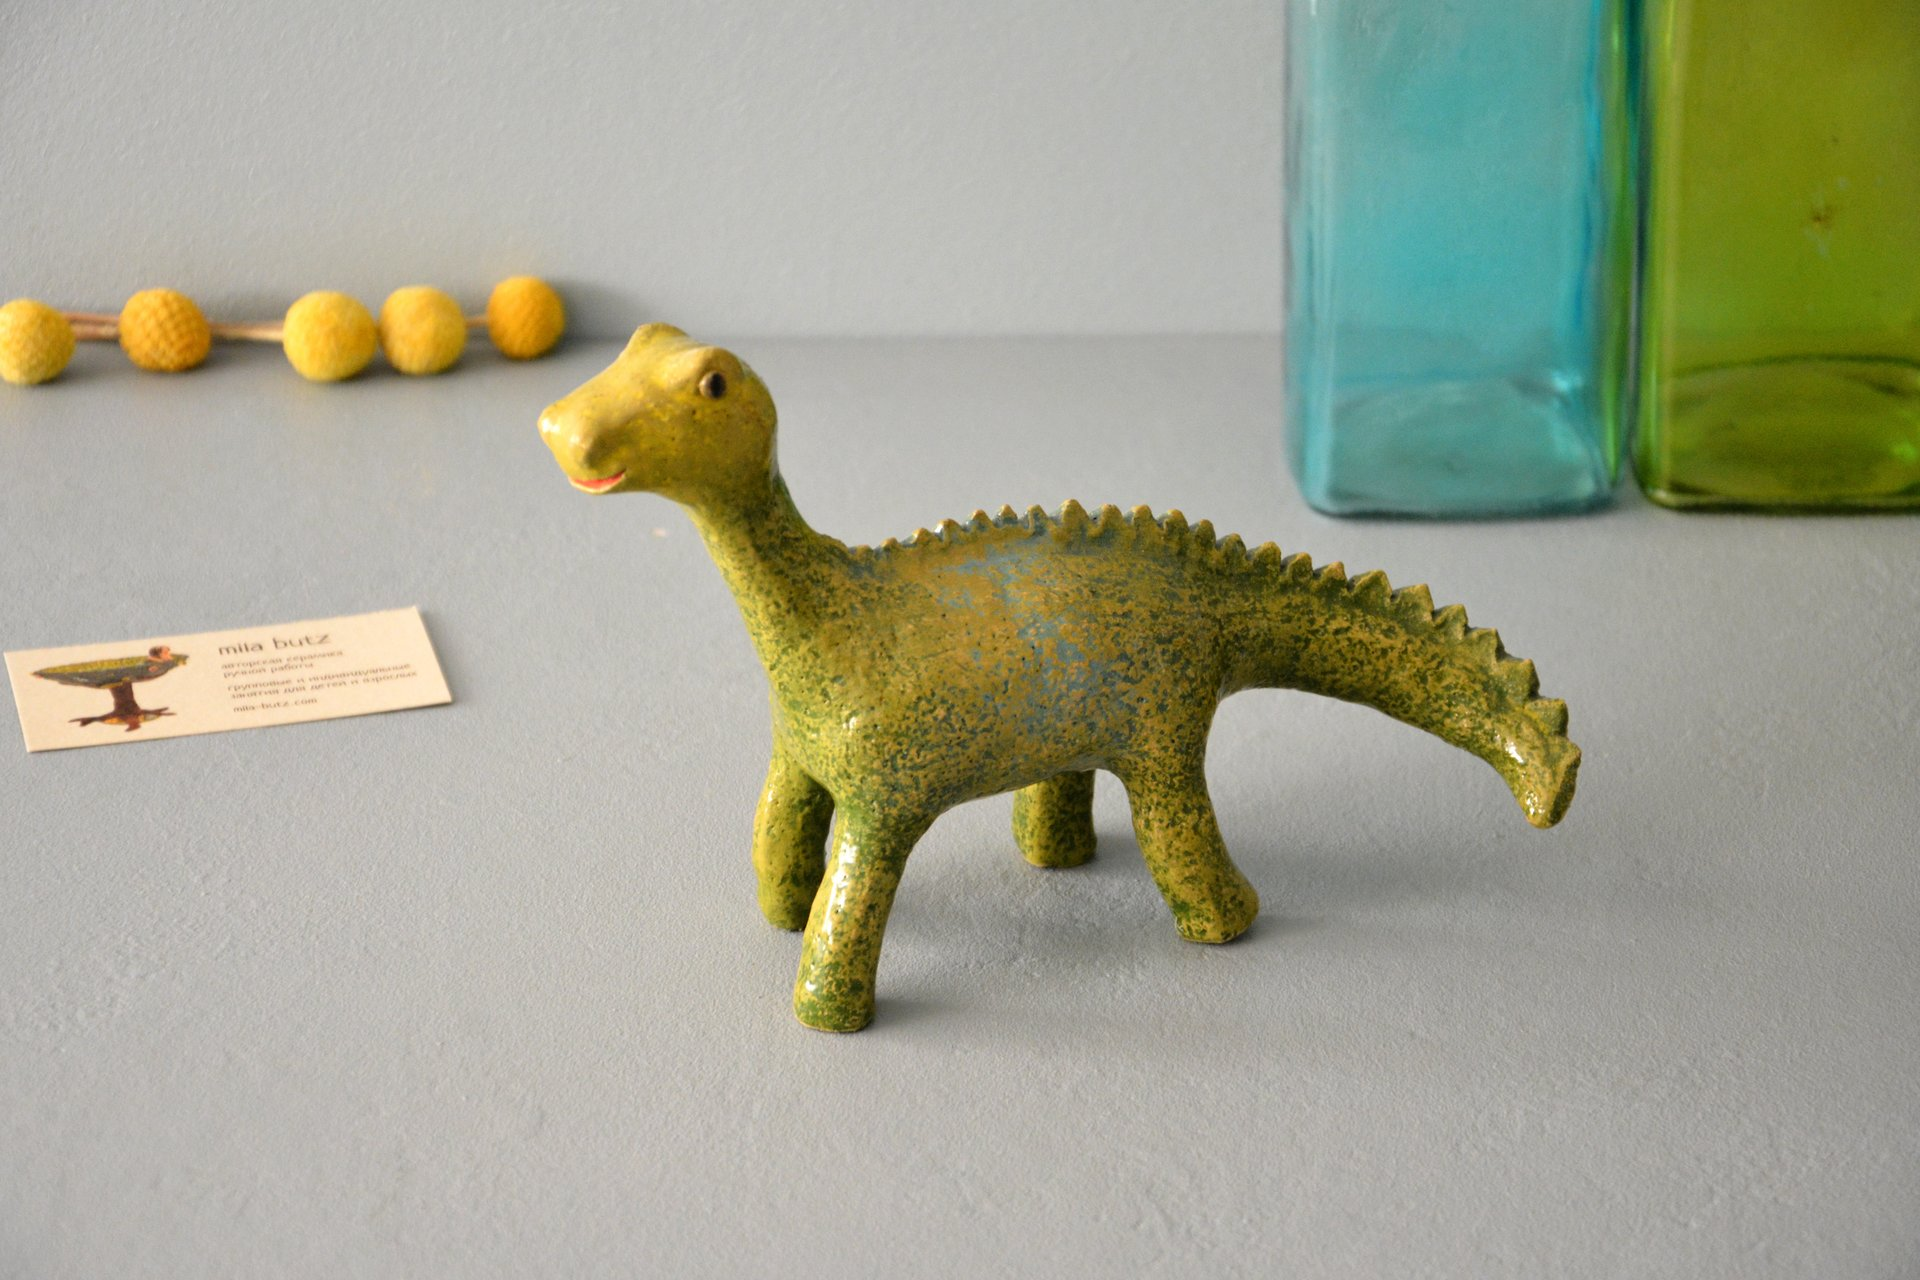 Dino - Ceramic other figures, height - 20 cm, photo 2 of 5.